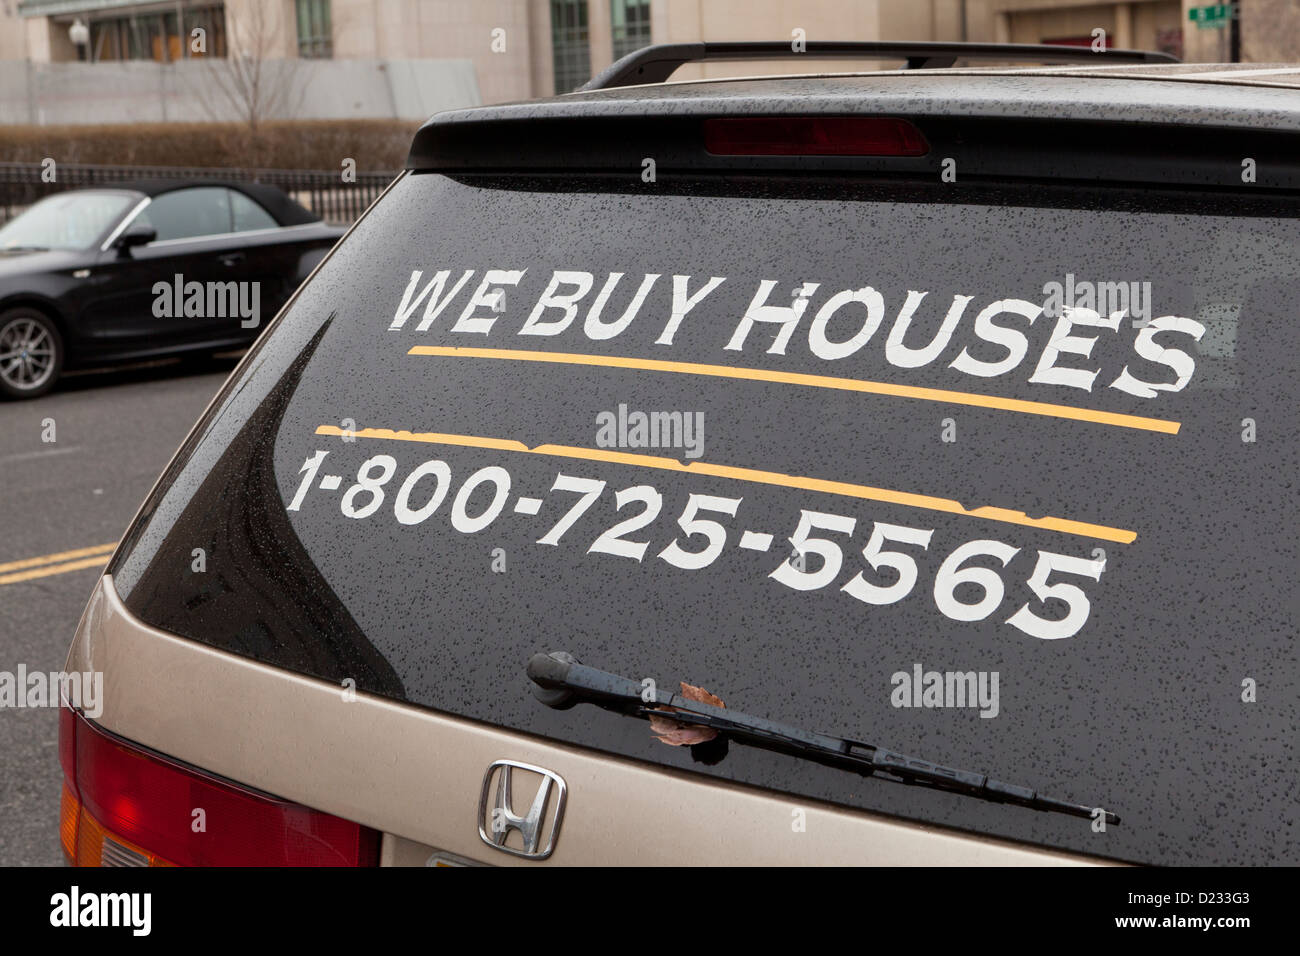 We Buy Houses ad on rear windshield - Stock Image